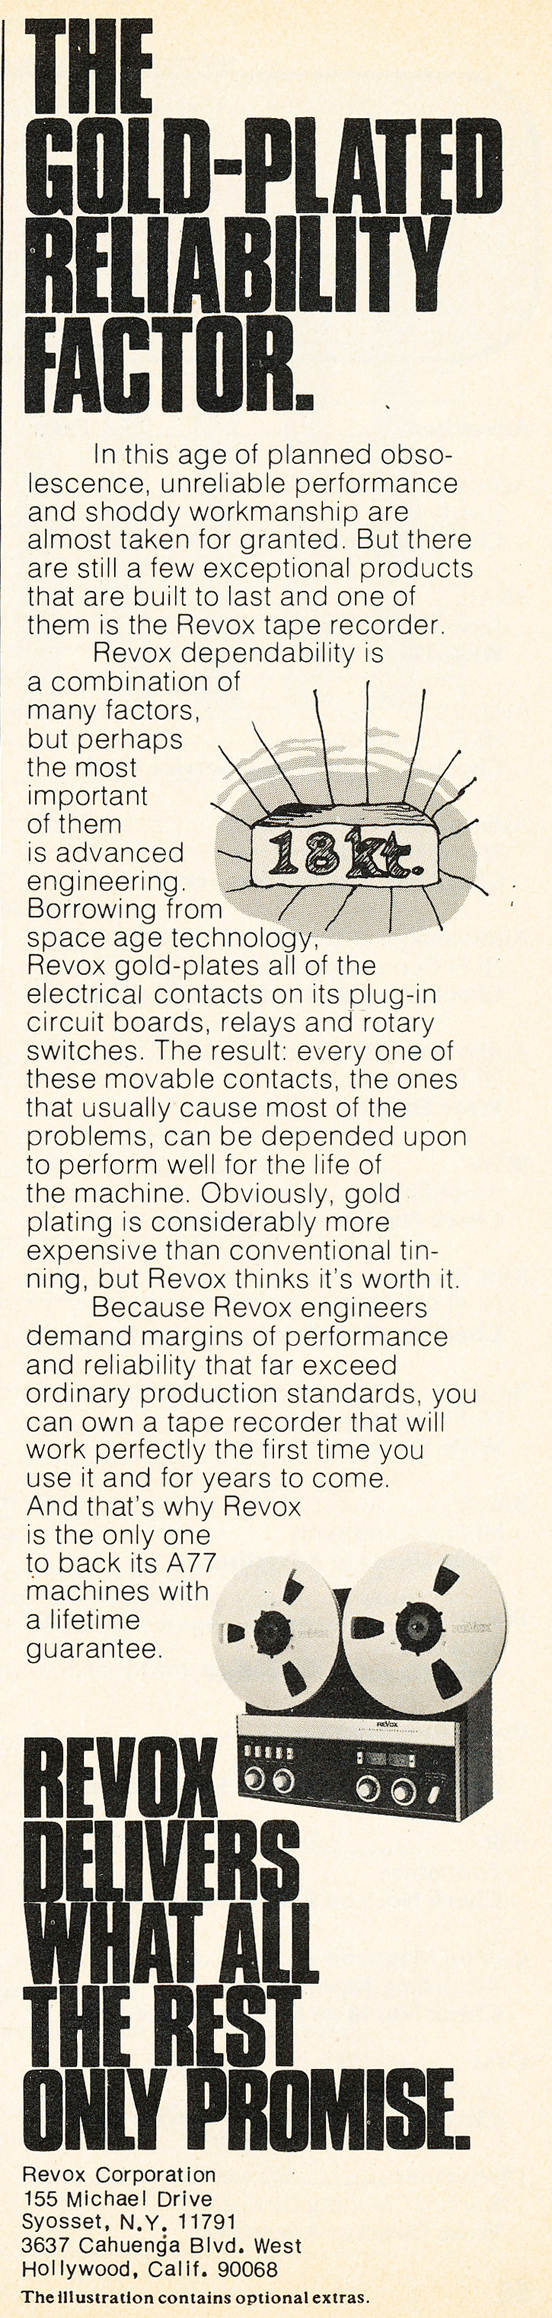 1975 ad for the ReVx A77 reel to reel tape recorder in Reel2ReelTexas.com's vintage recording collection